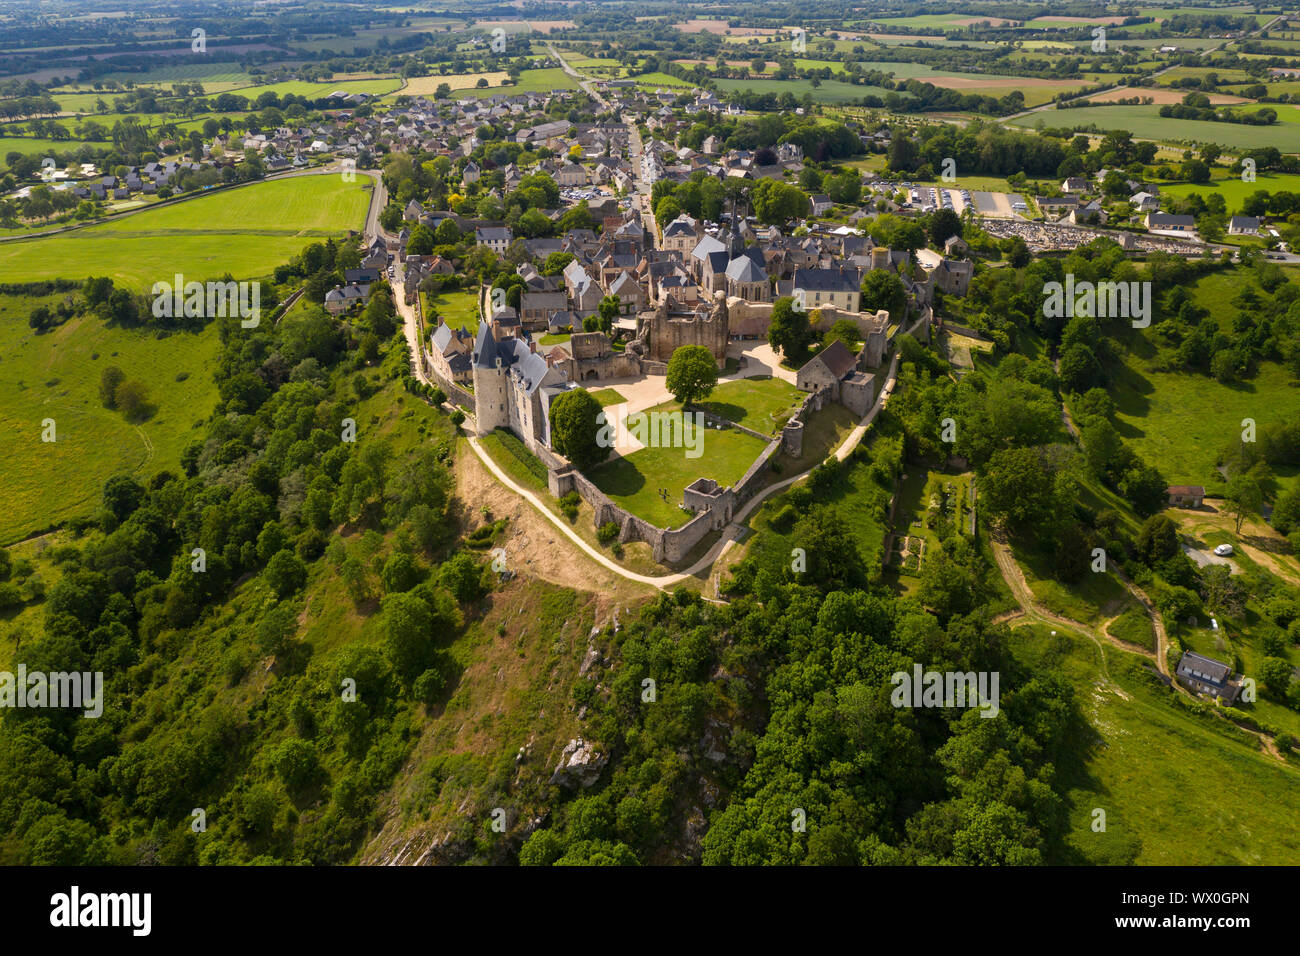 Drone View Of The Hilltop Village Of Saint Suzanne In The Mayenne Area France Europe Stock Photo Alamy